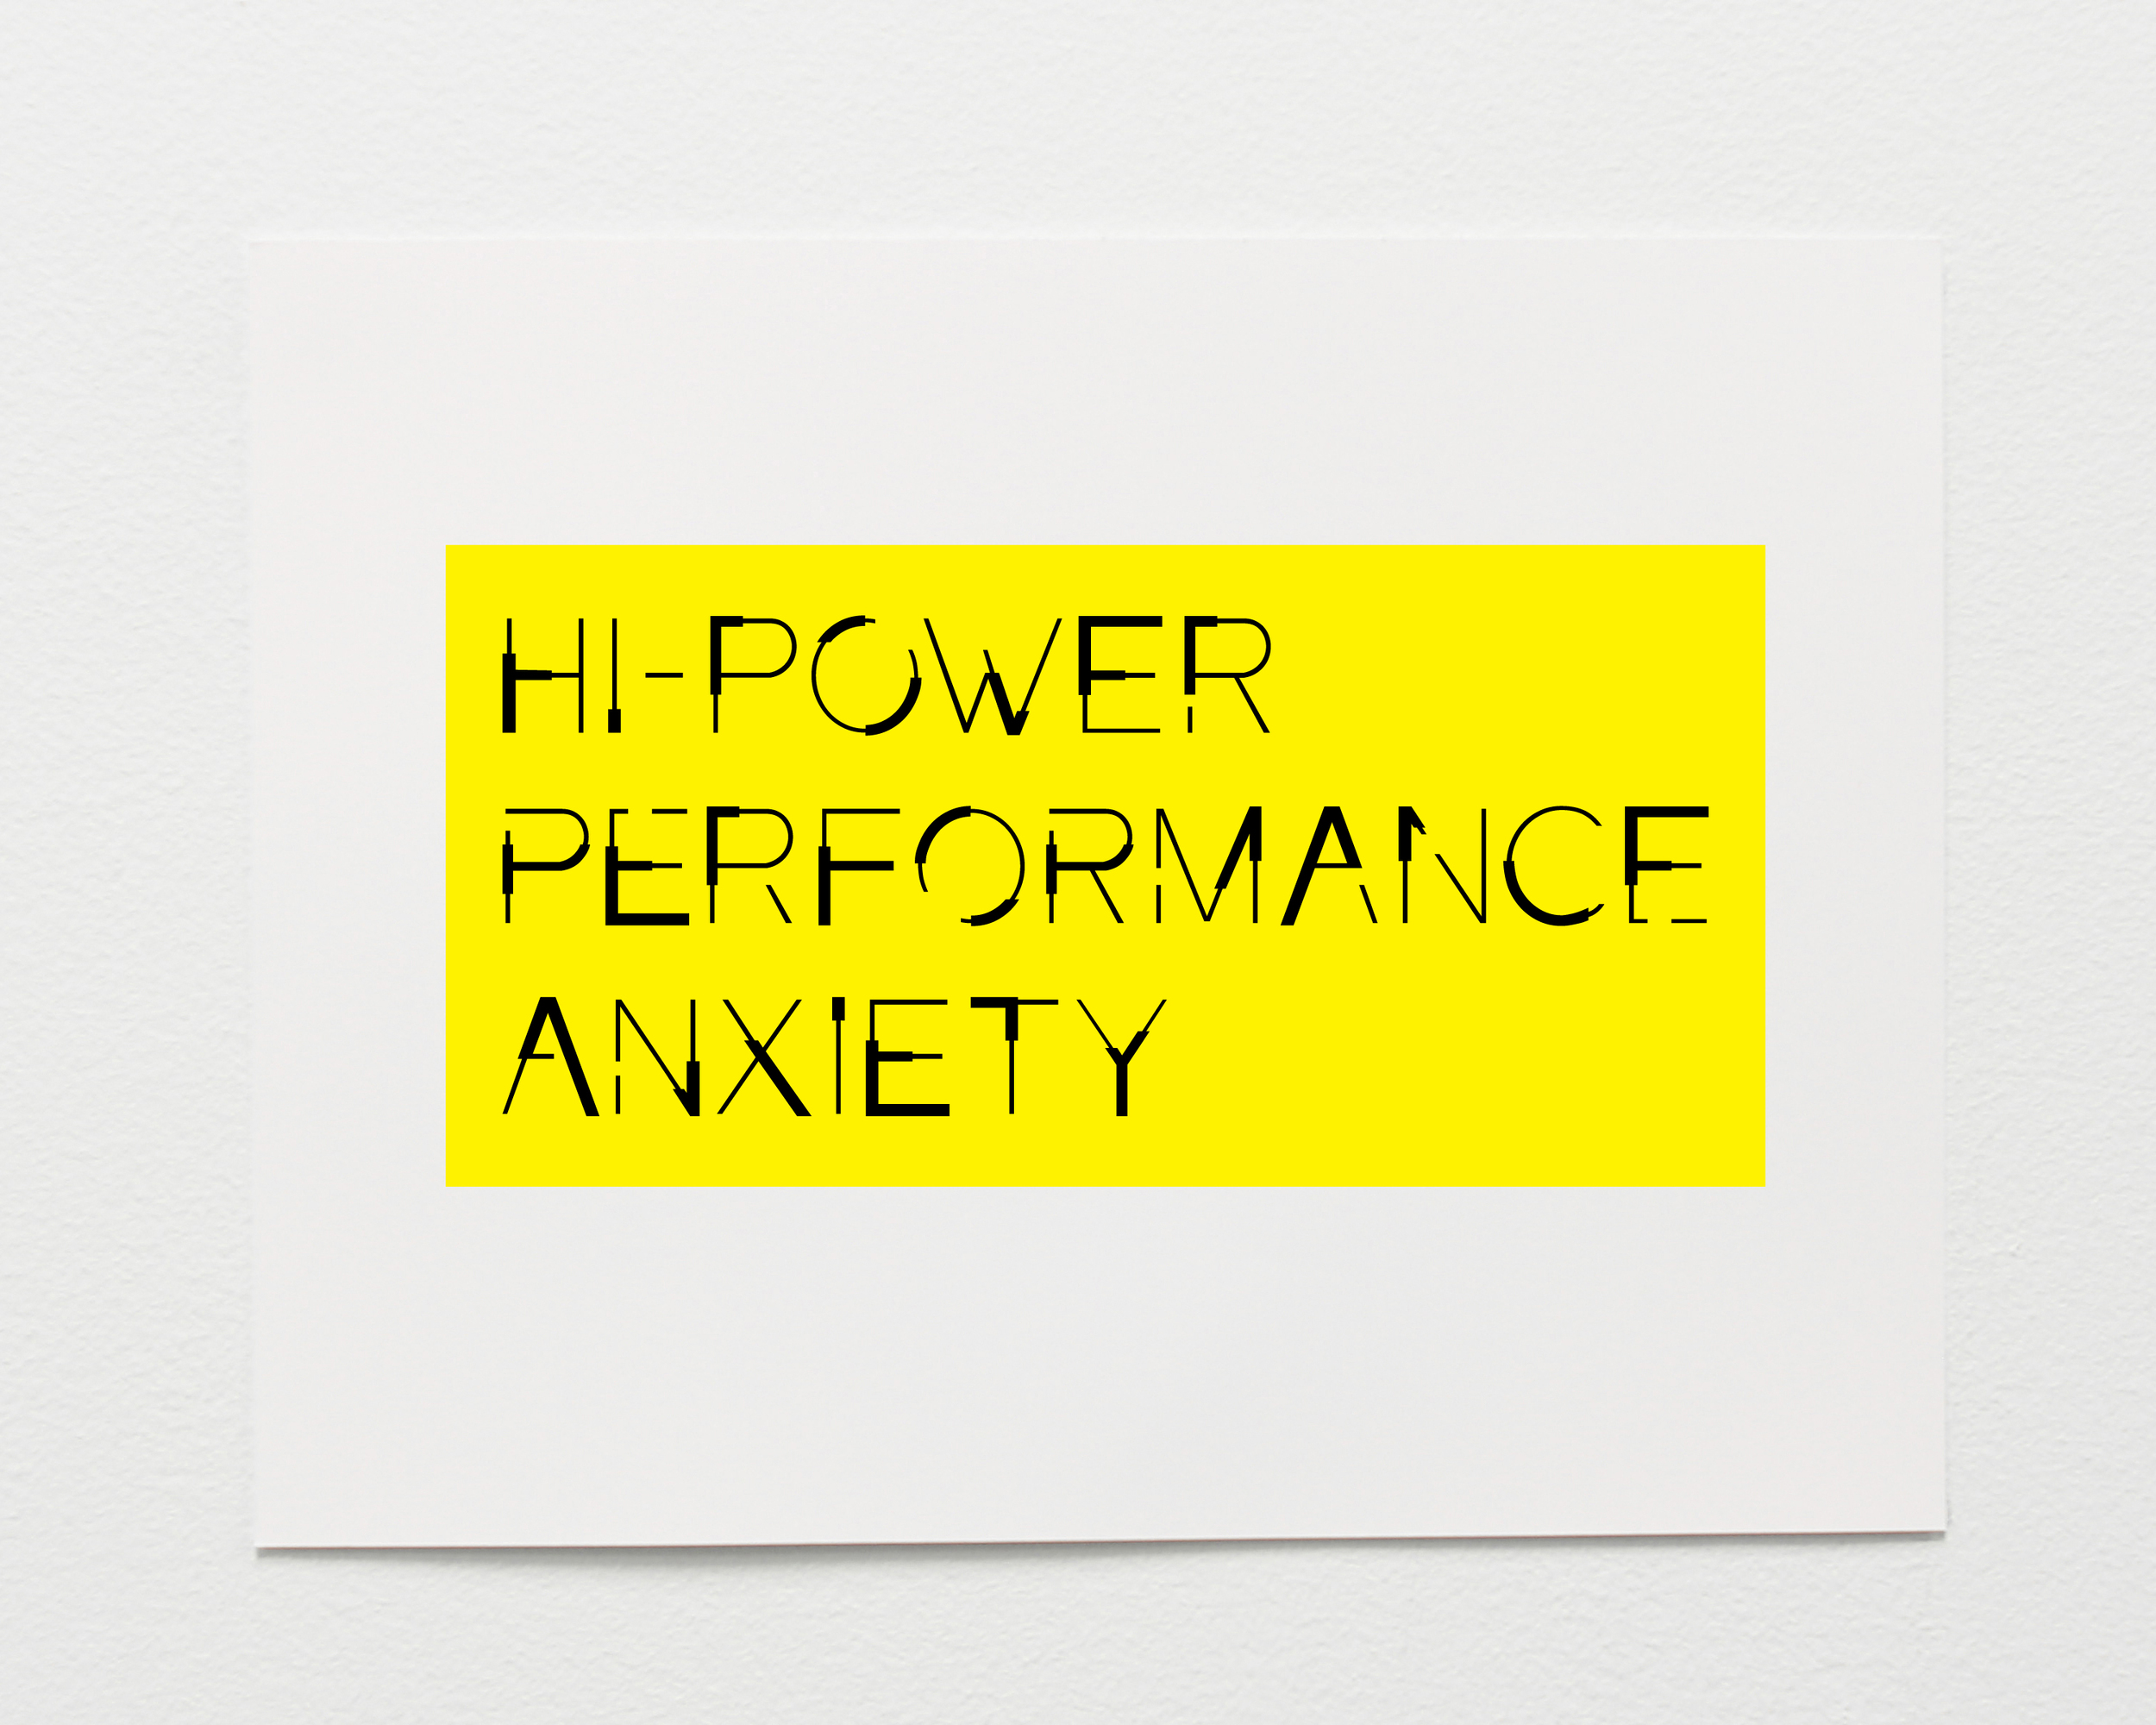 Hi-Power Performance Anxiety